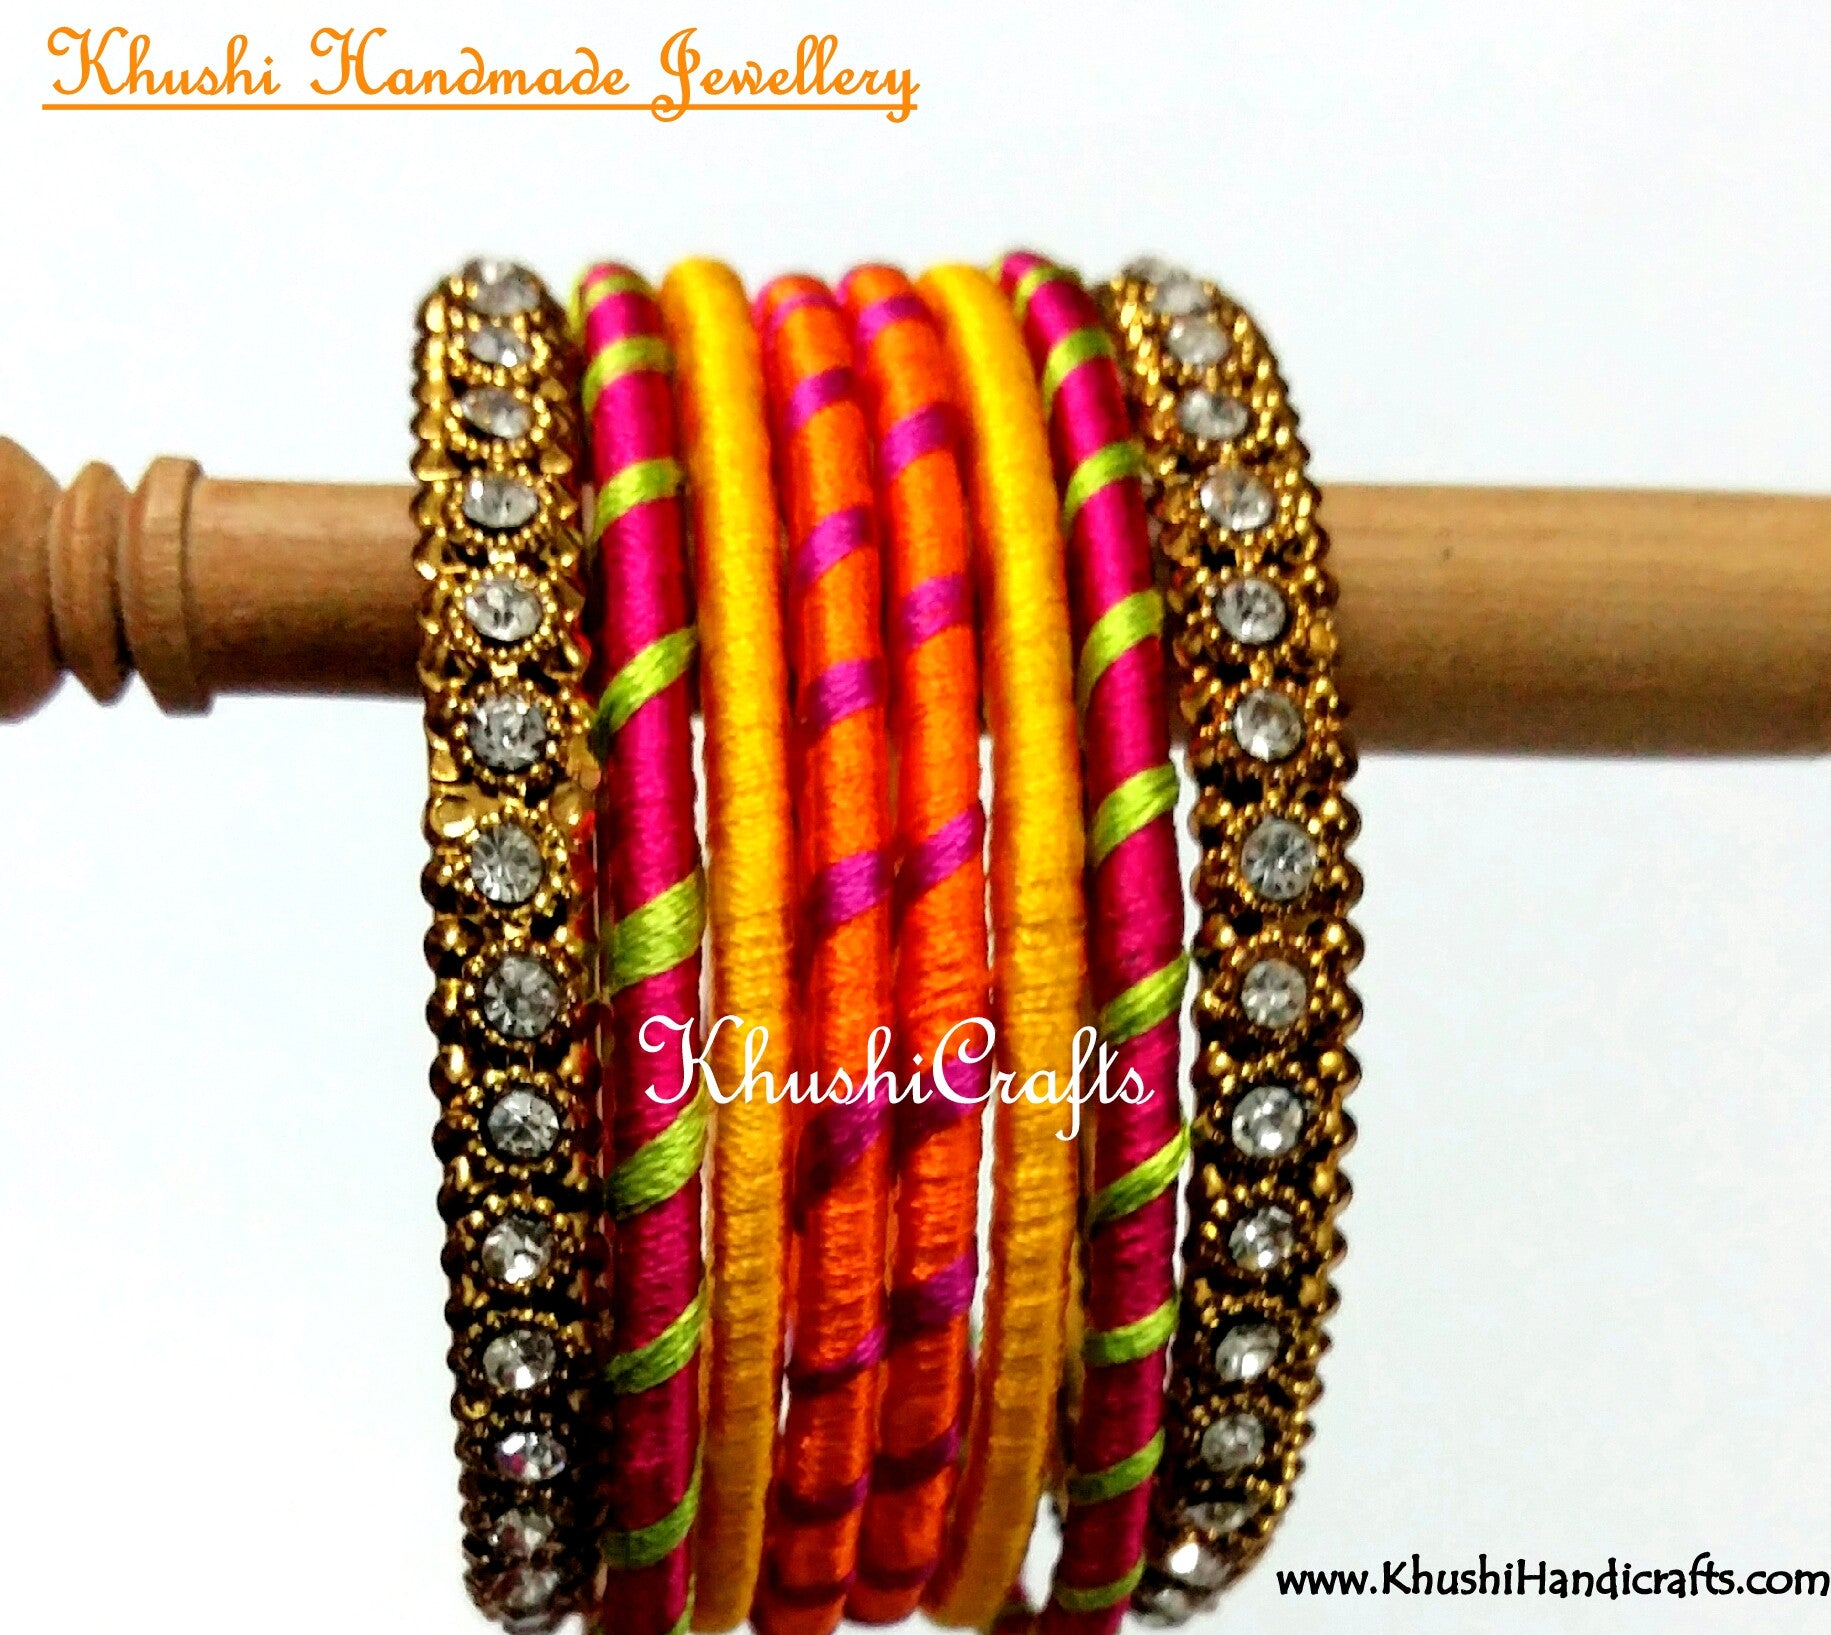 Hand-crafted Stylish Silk Bangles in Orange Yellow and Pink - Khushi Handmade Jewellery